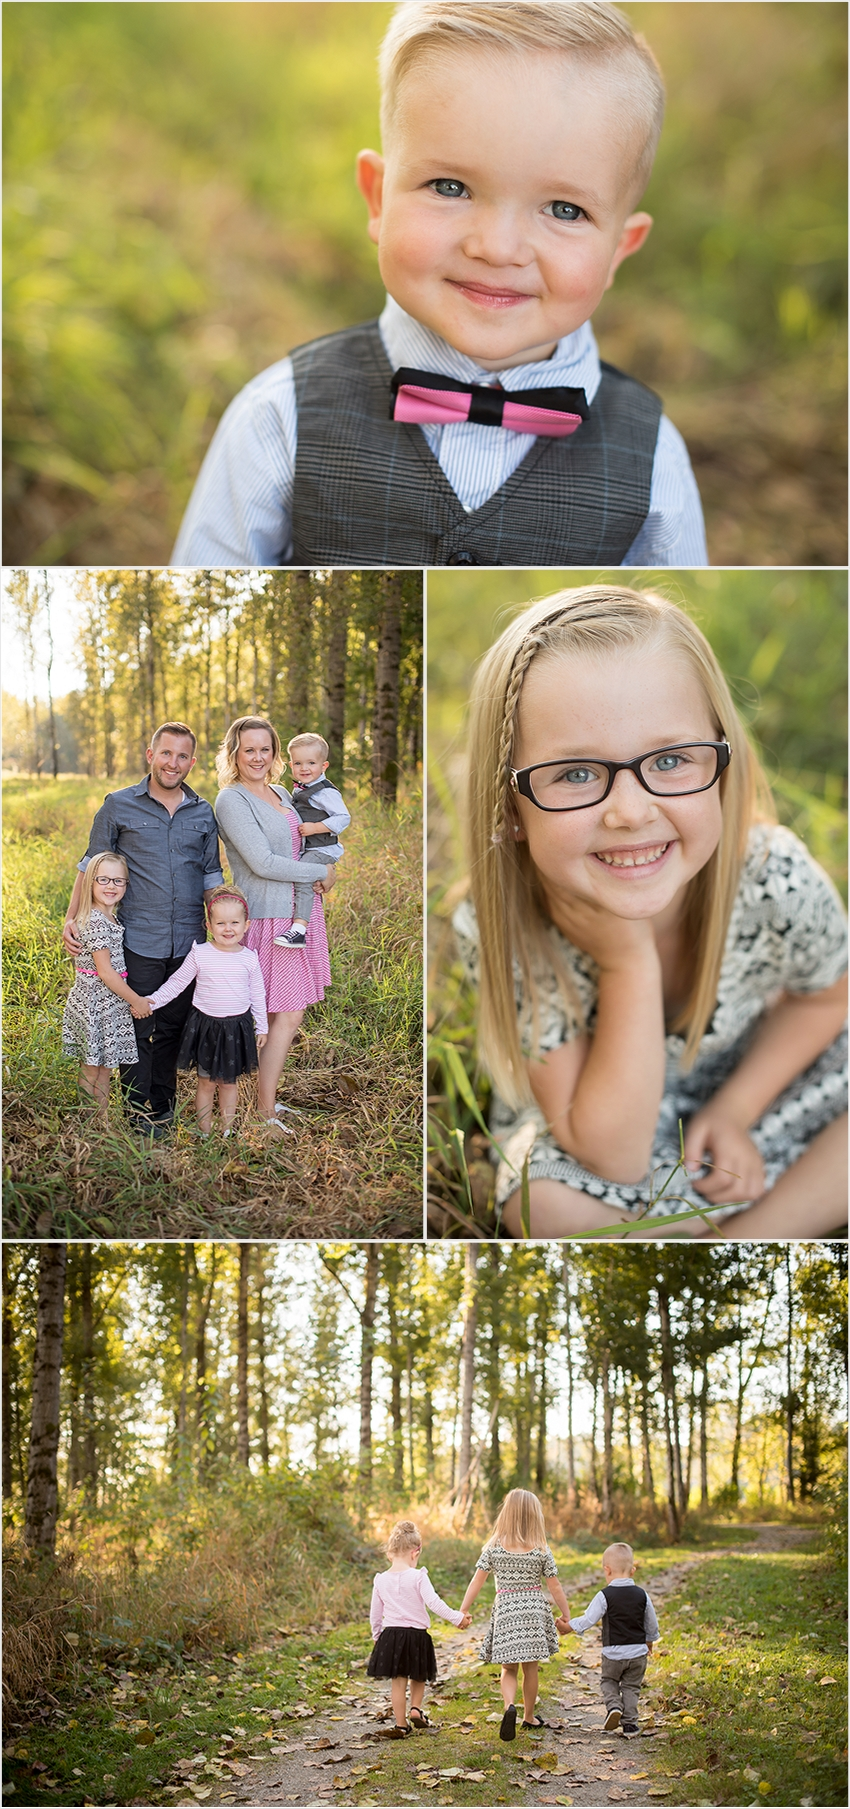 abbotsford-bc-family-photographer-photographer-003-side-3